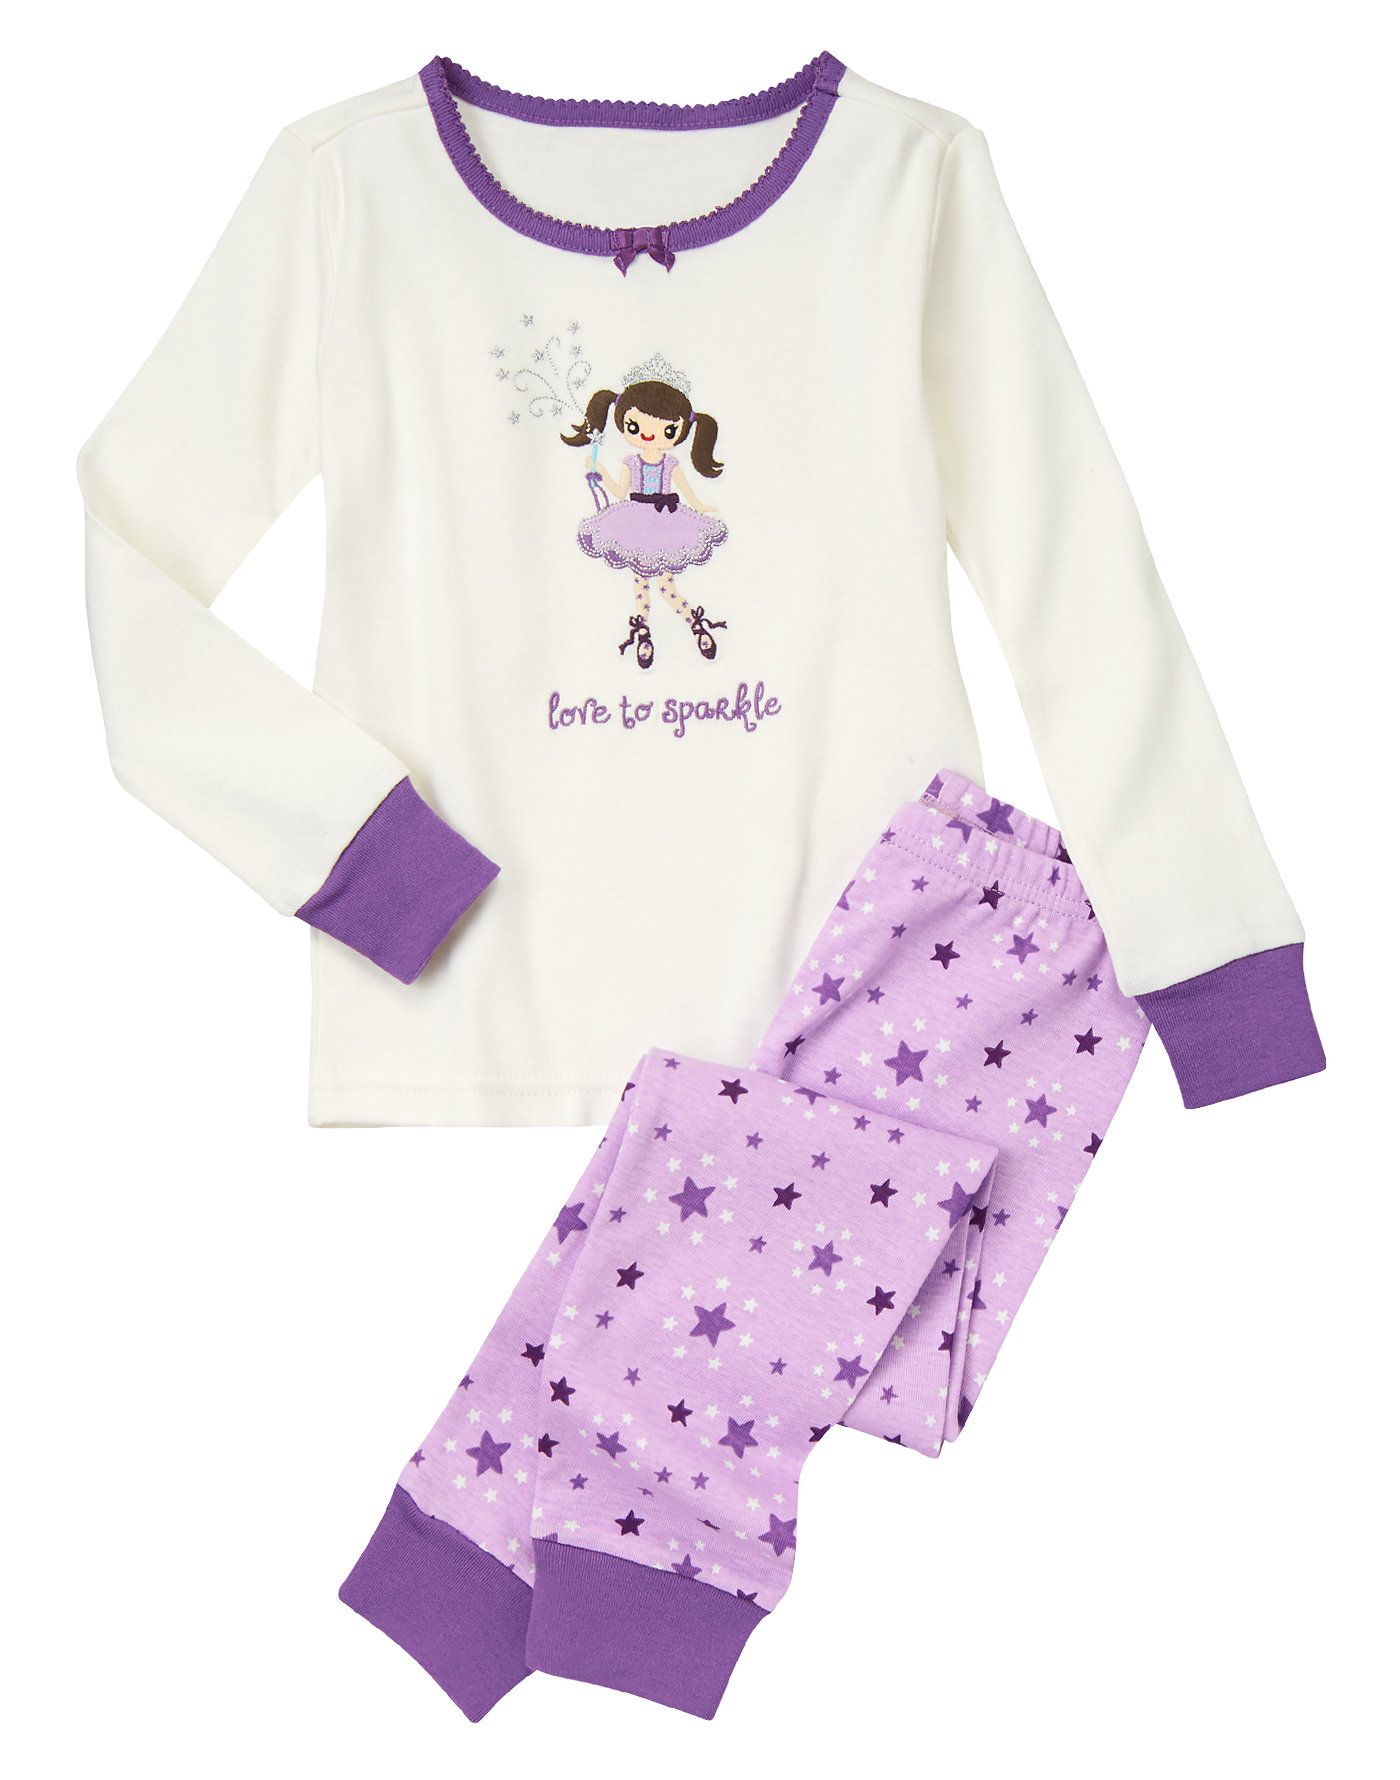 338d7405bf14 Comfy cotton pajama style with sparkly stars and a pretty fairy friend.